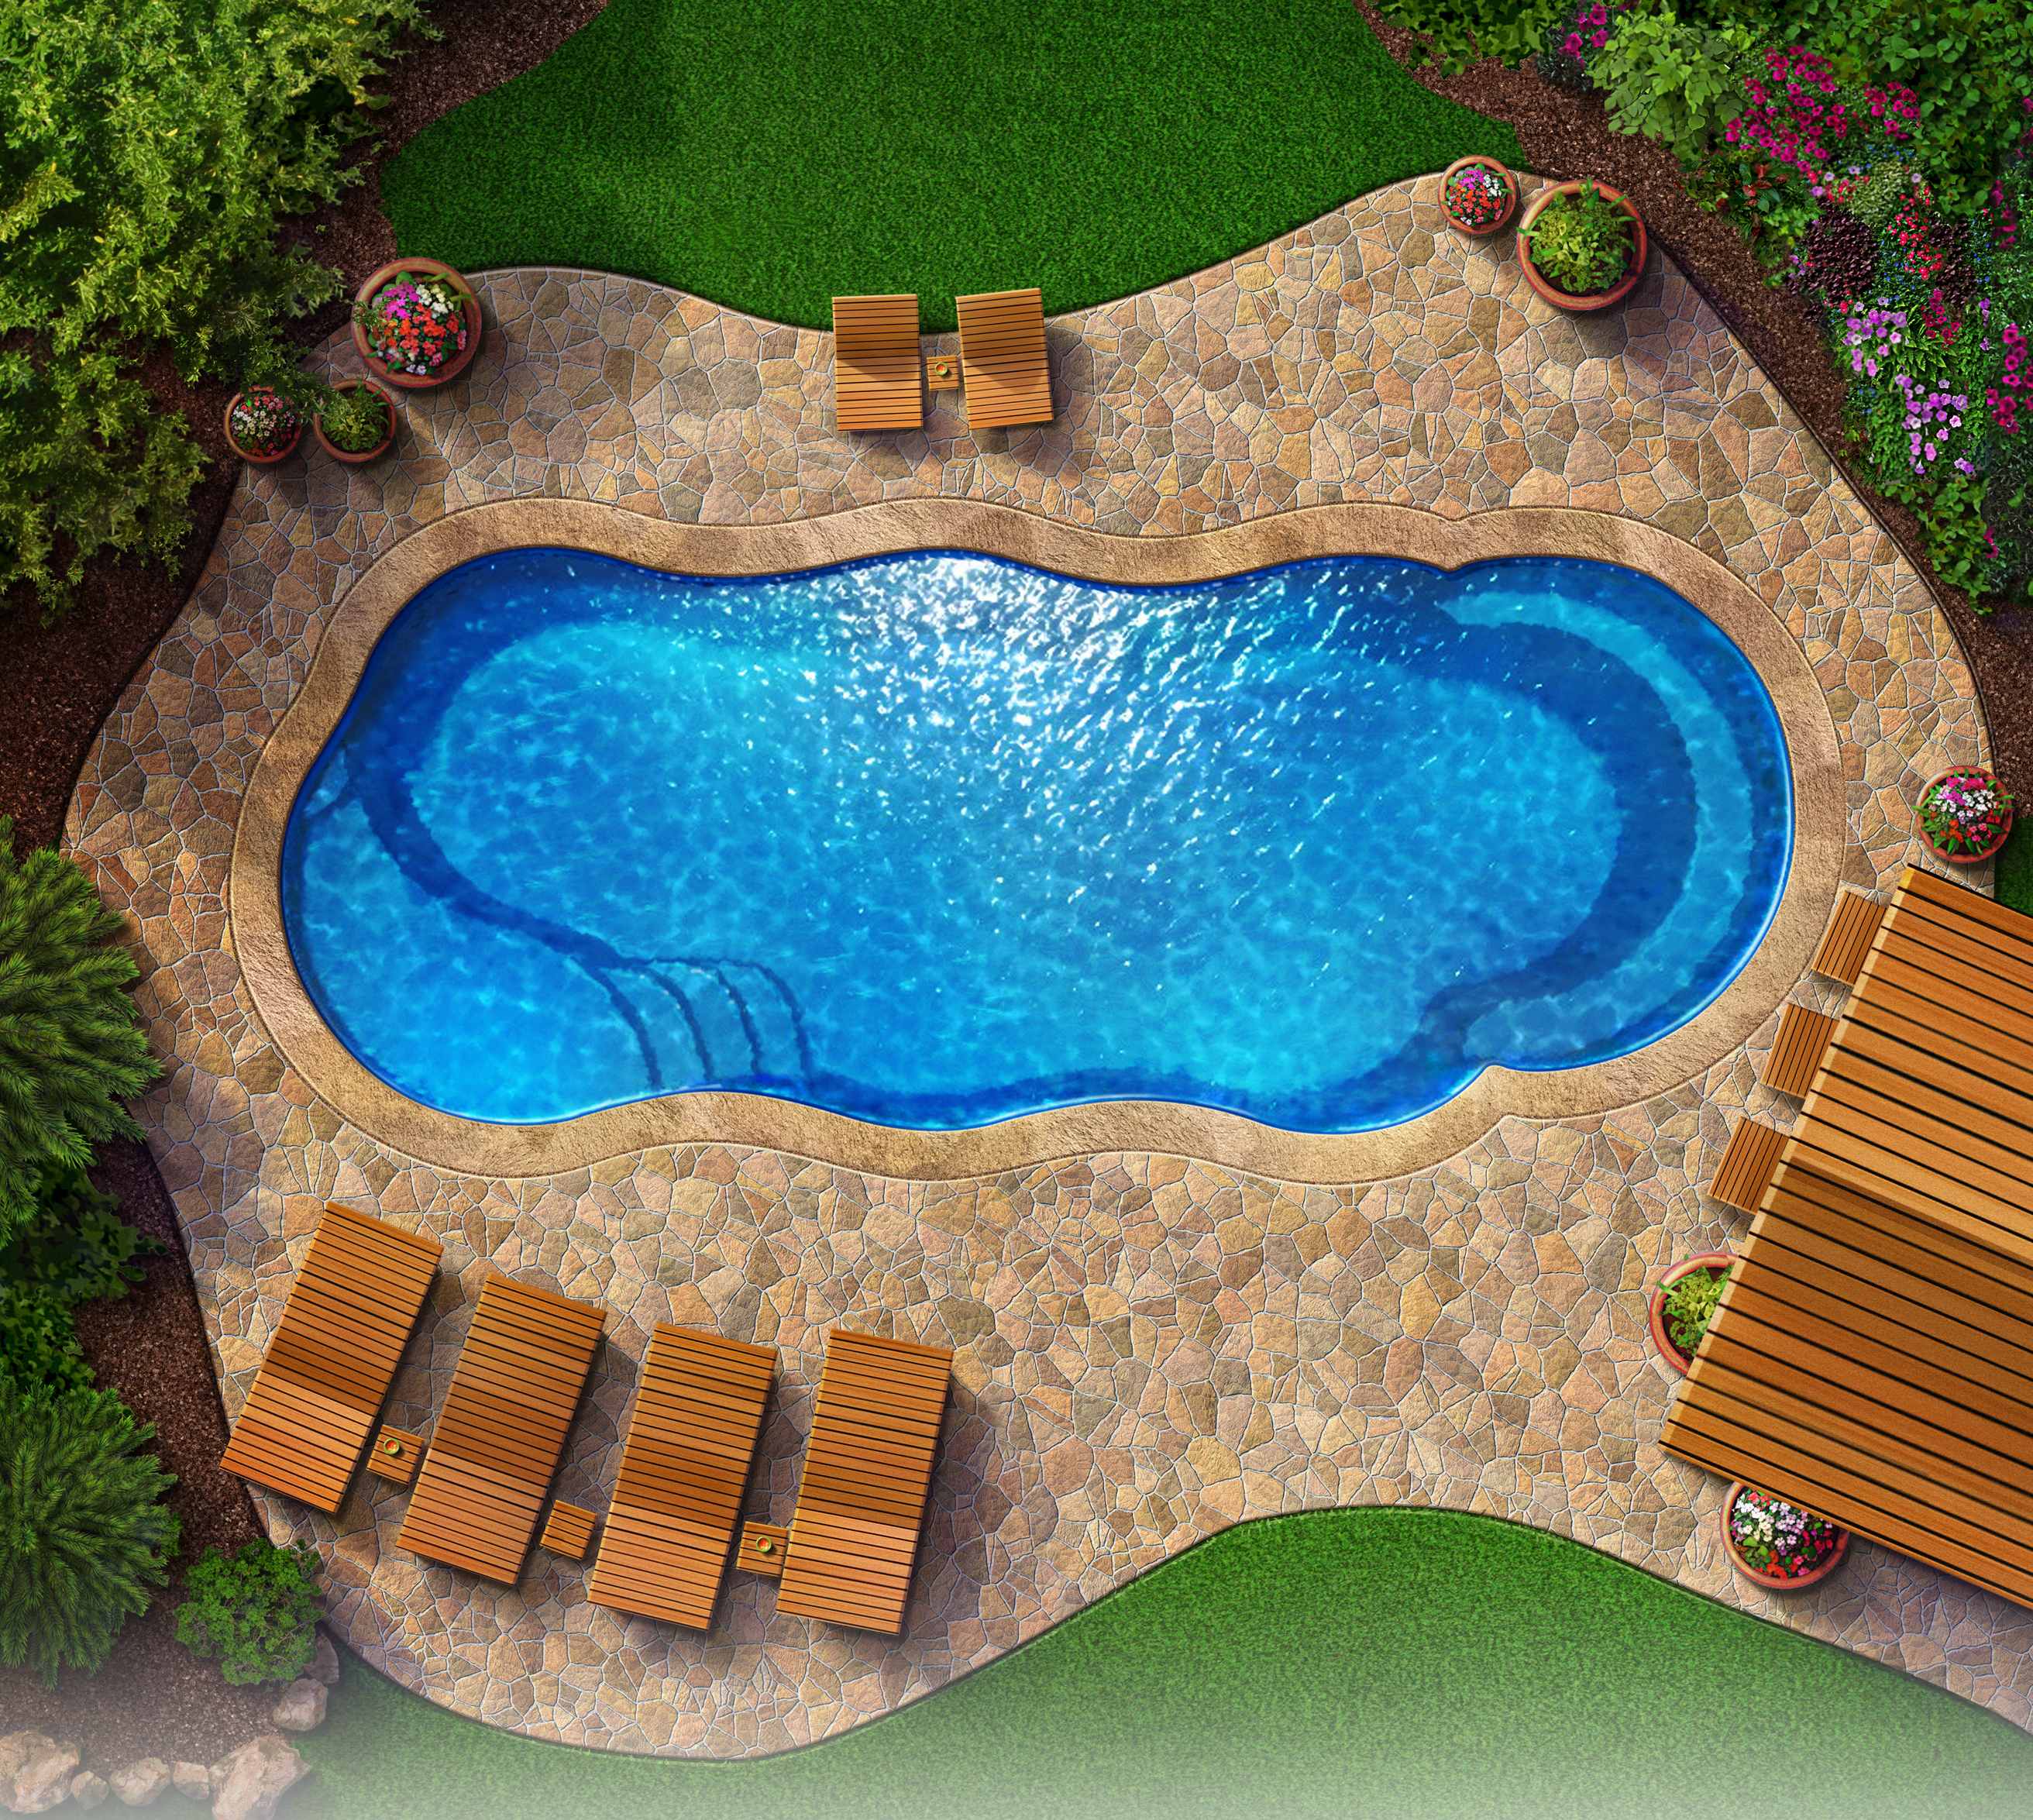 Crescent cove fiberglass pool kits gardening outdoors crescent cove fiberglass pool kits solutioingenieria